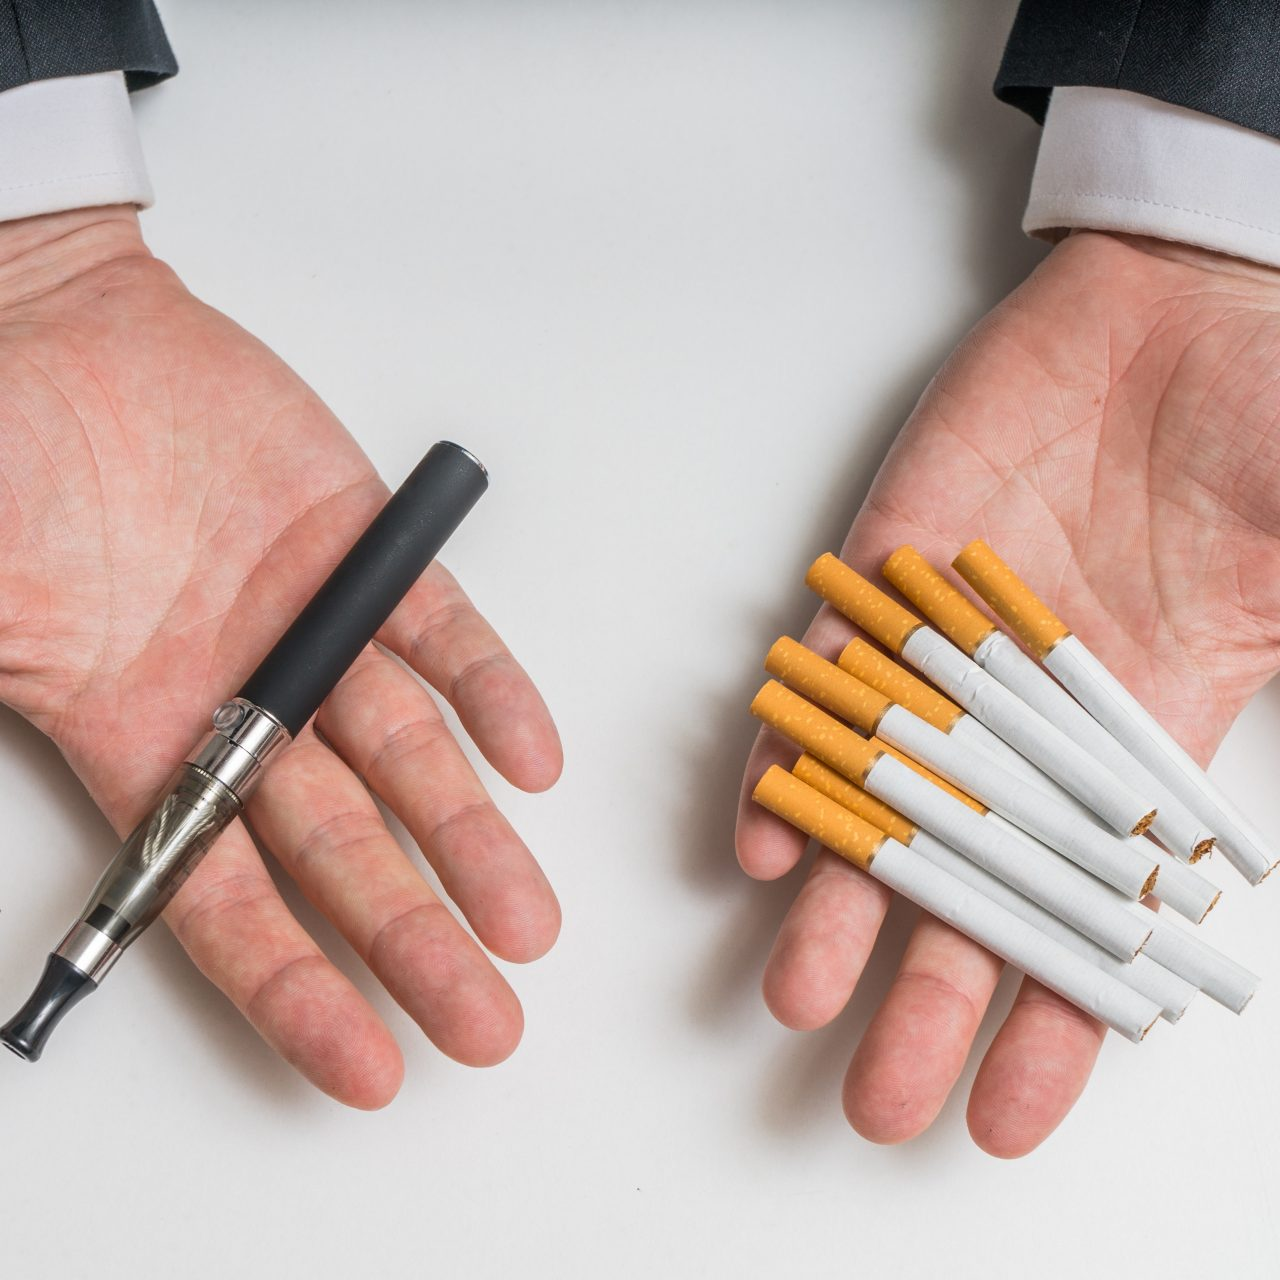 Hands are holding electronic vaporizer and conventional tobacco cigarettes and comparing them.